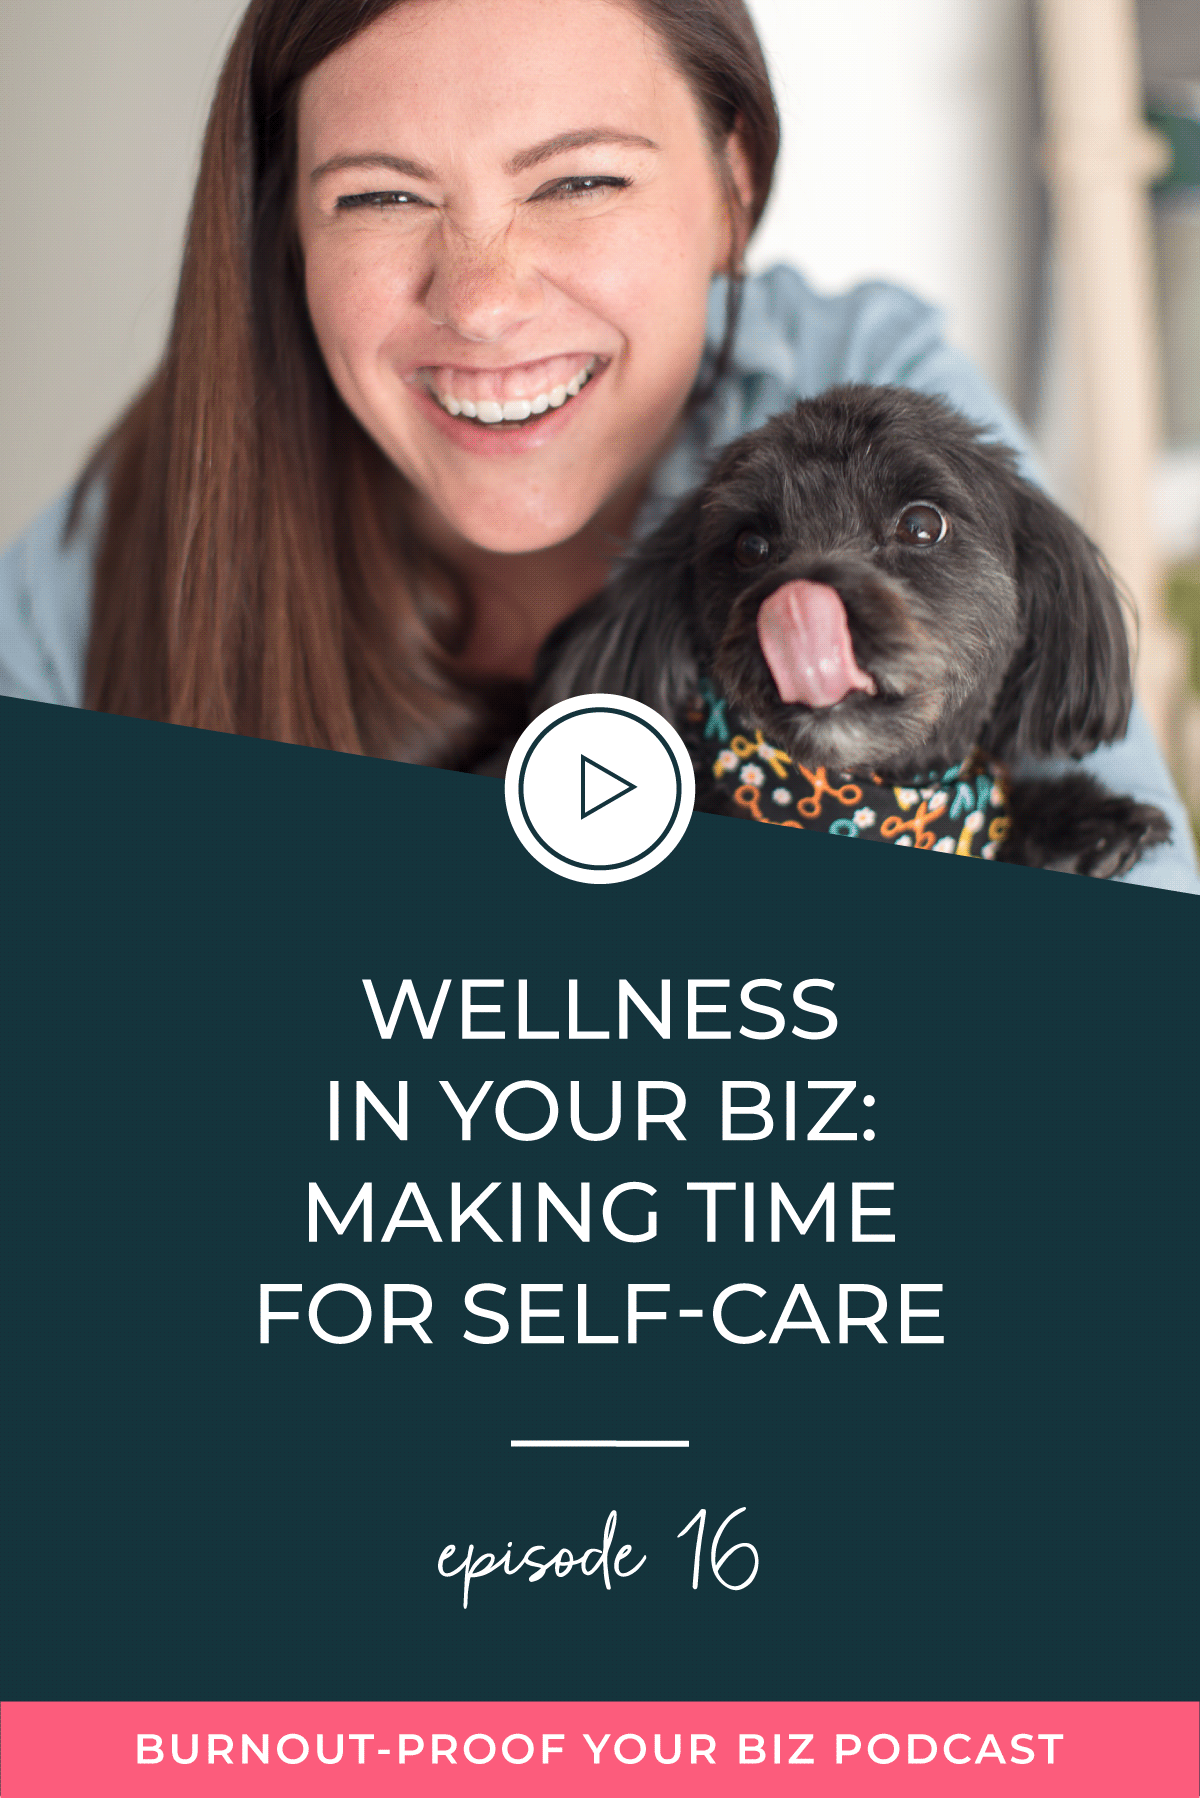 Burnout-Proof Your Biz Podcast with Chelsea B Foster | Episode 016 - Wellness In Your Biz: Making Time for Self-Care | Learn how to run your biz and live your dream life on your own terms without the fear of burnout.